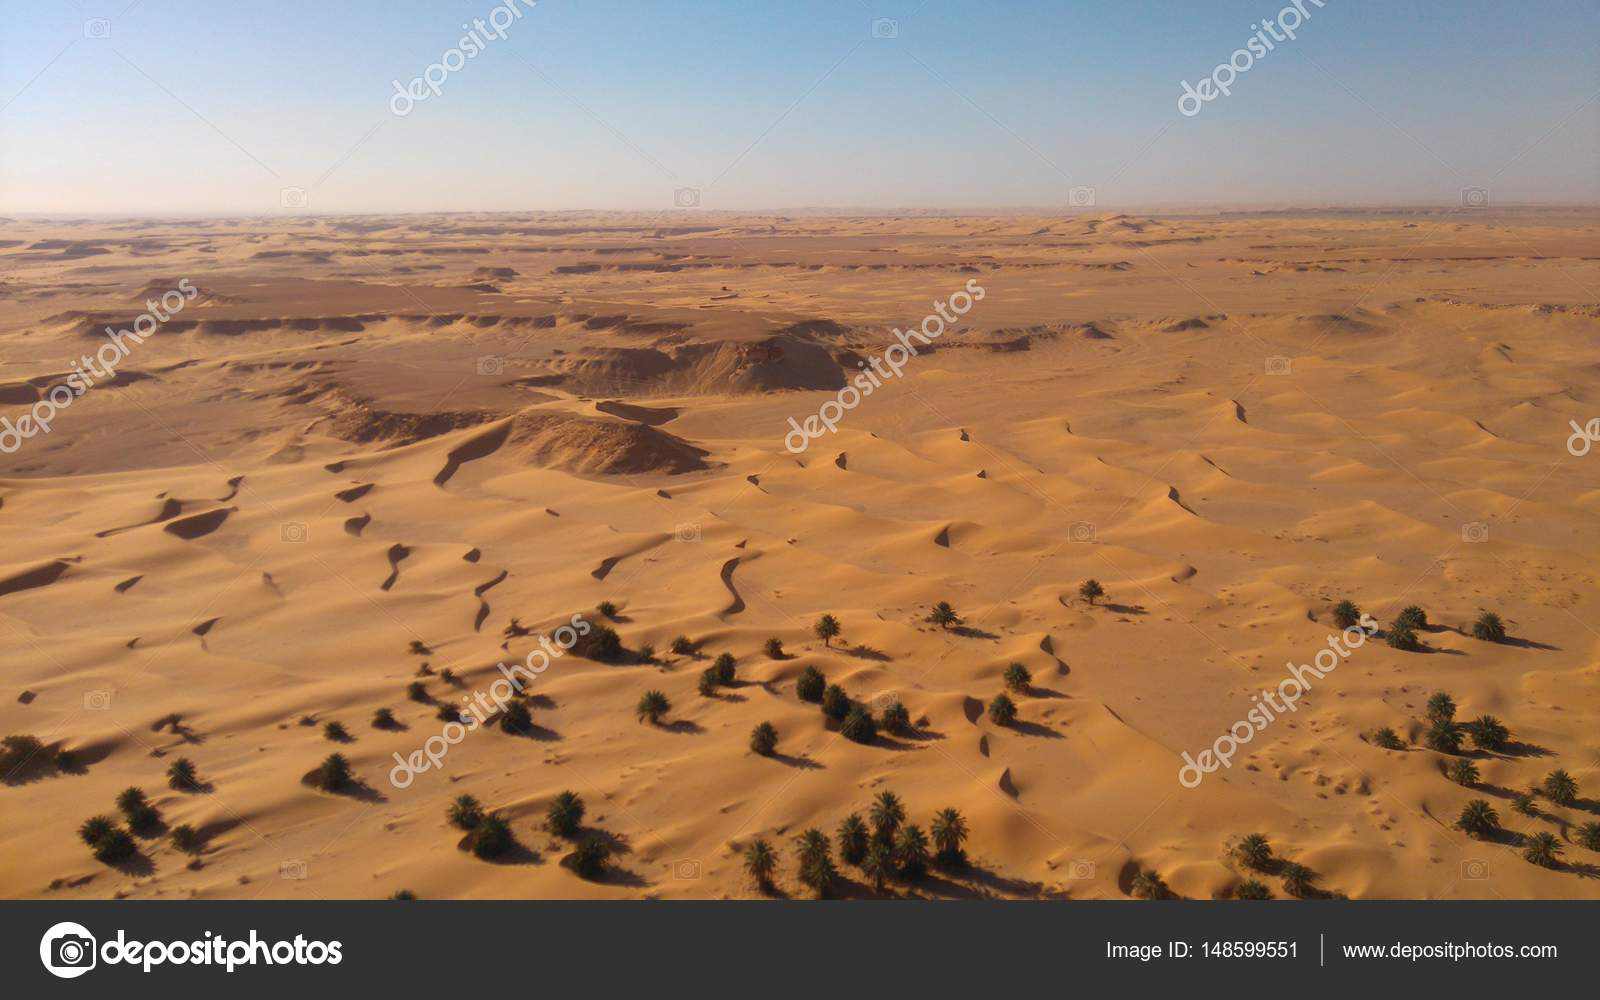 It Illustrates The Largest Desert In The World Picture Taken In - Largest desert in the world